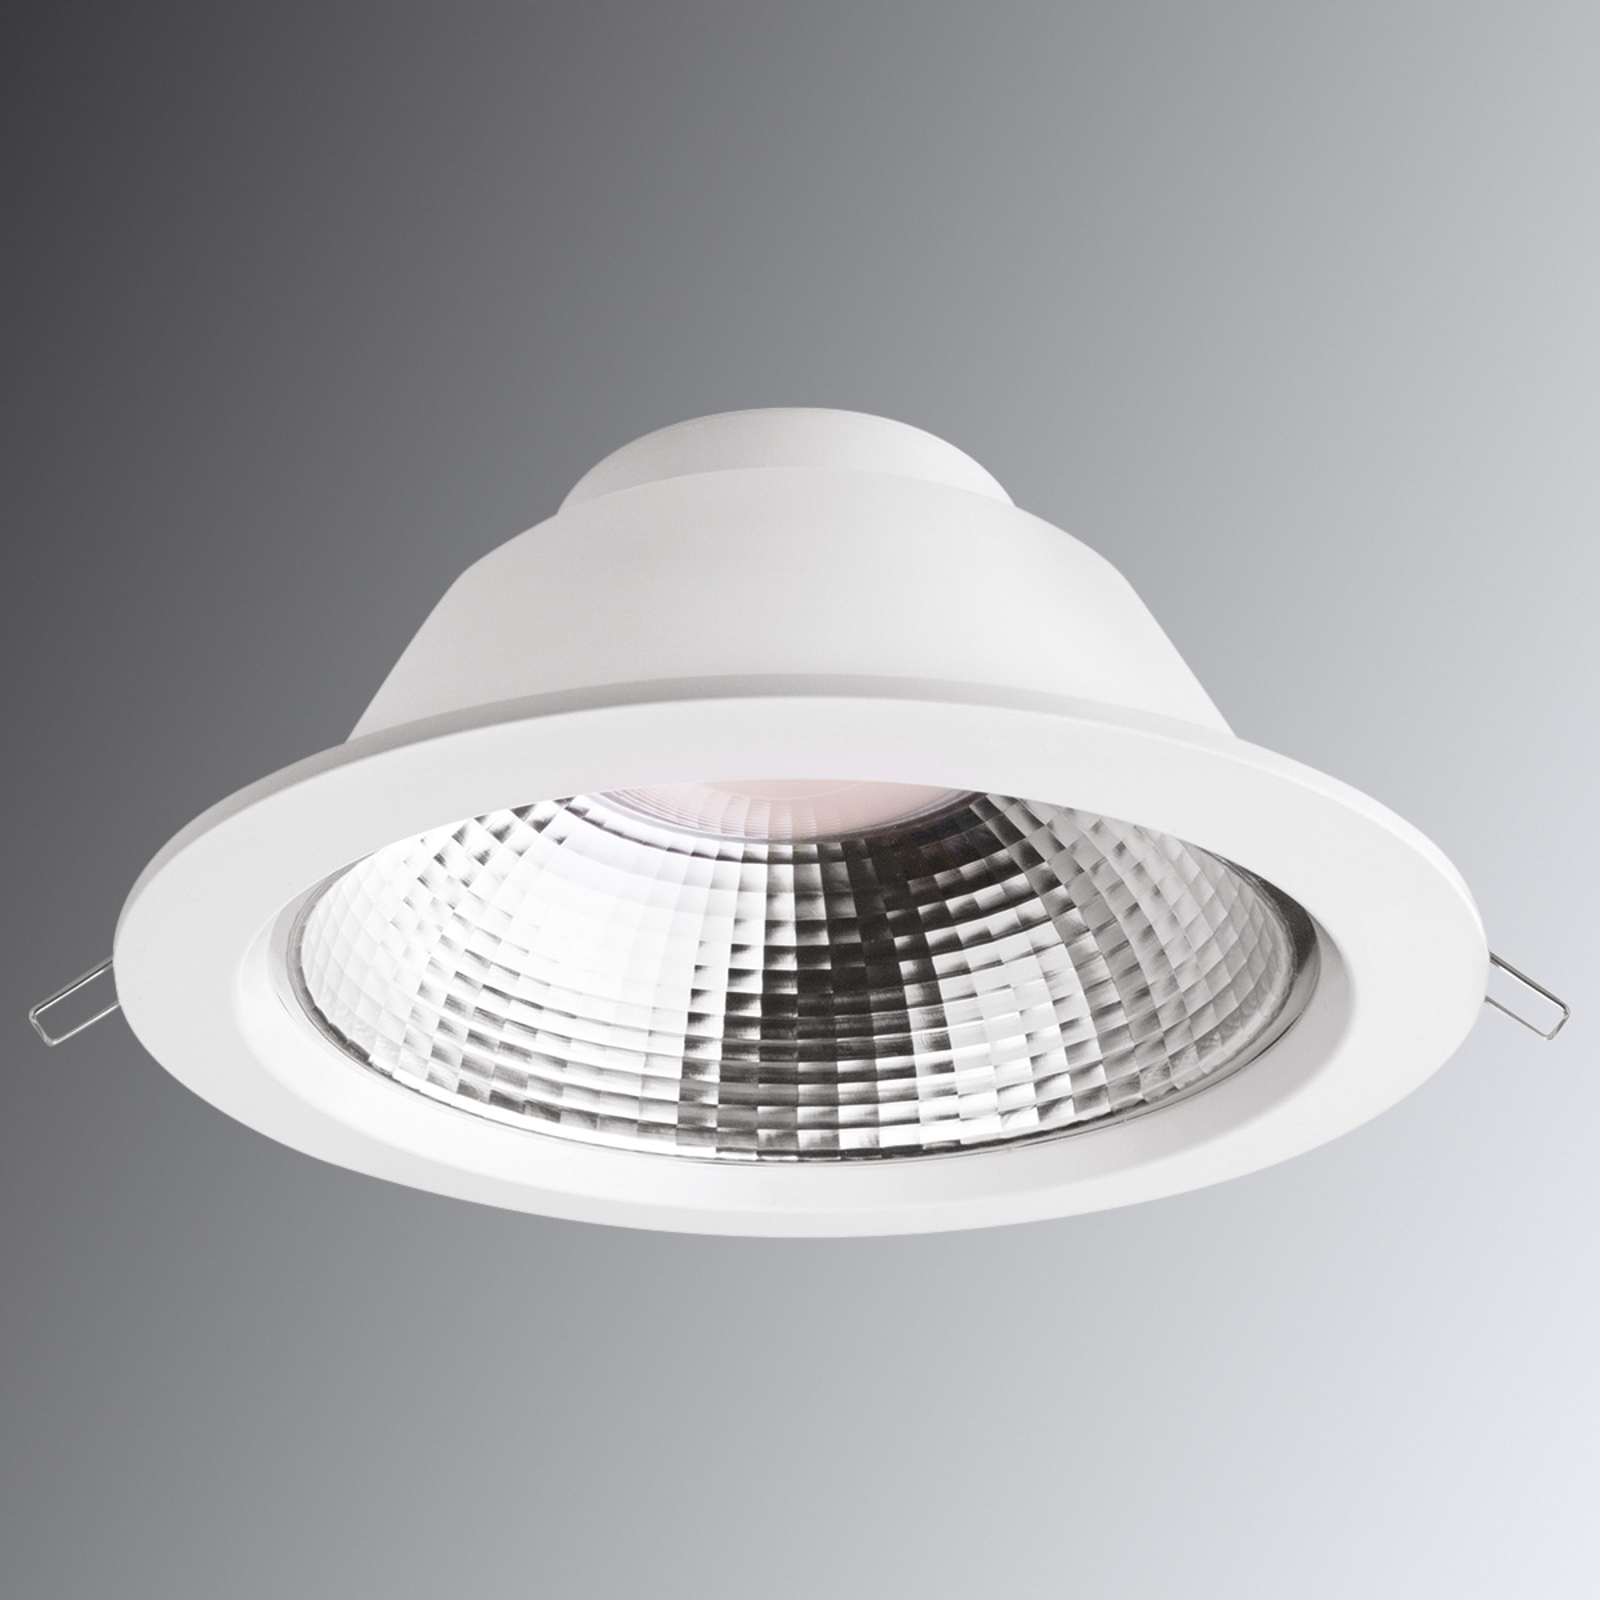 Siena LED-downlight 2 800 K